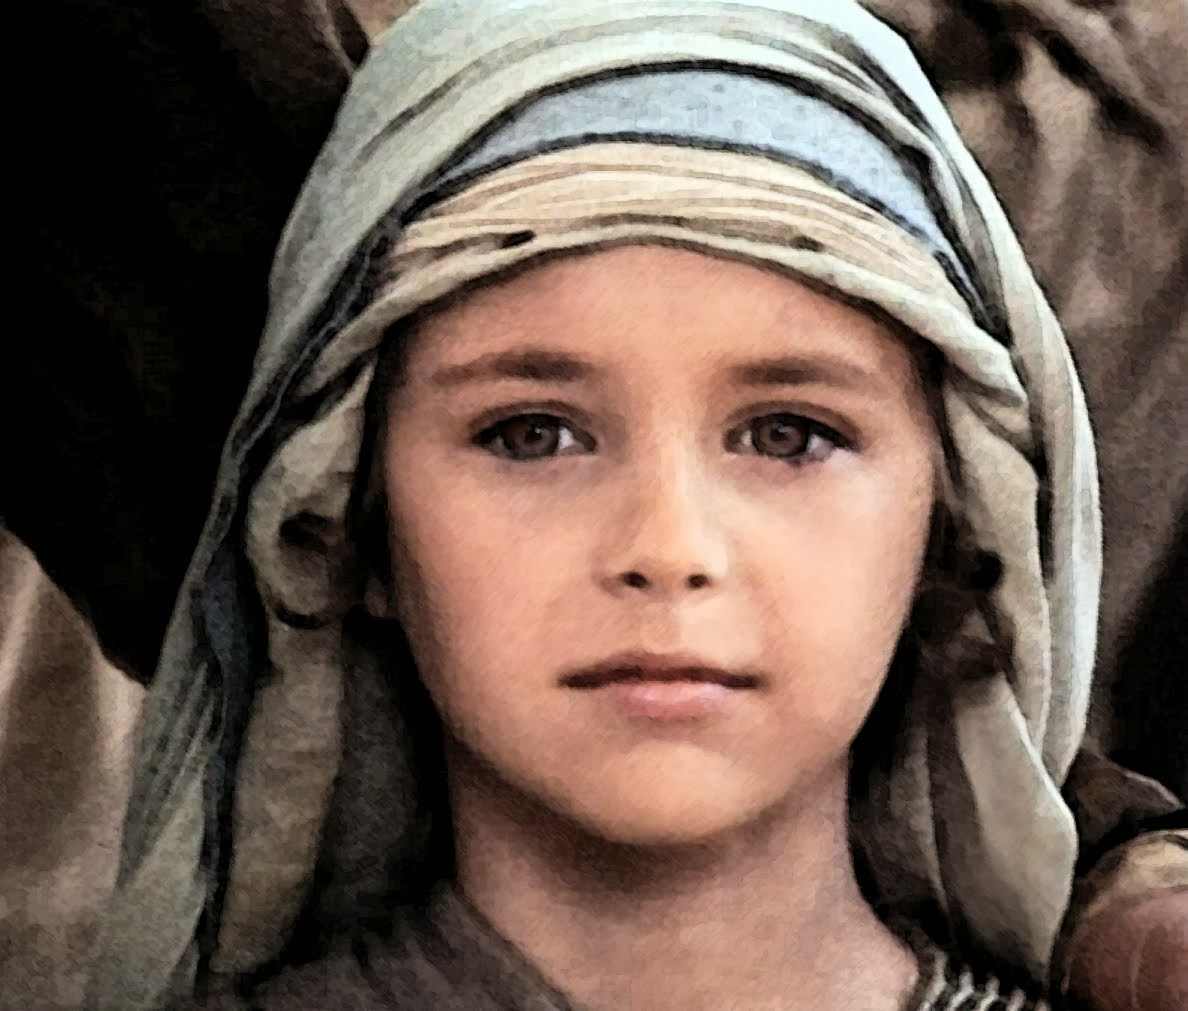 Lord Jesus Christ (as Child)